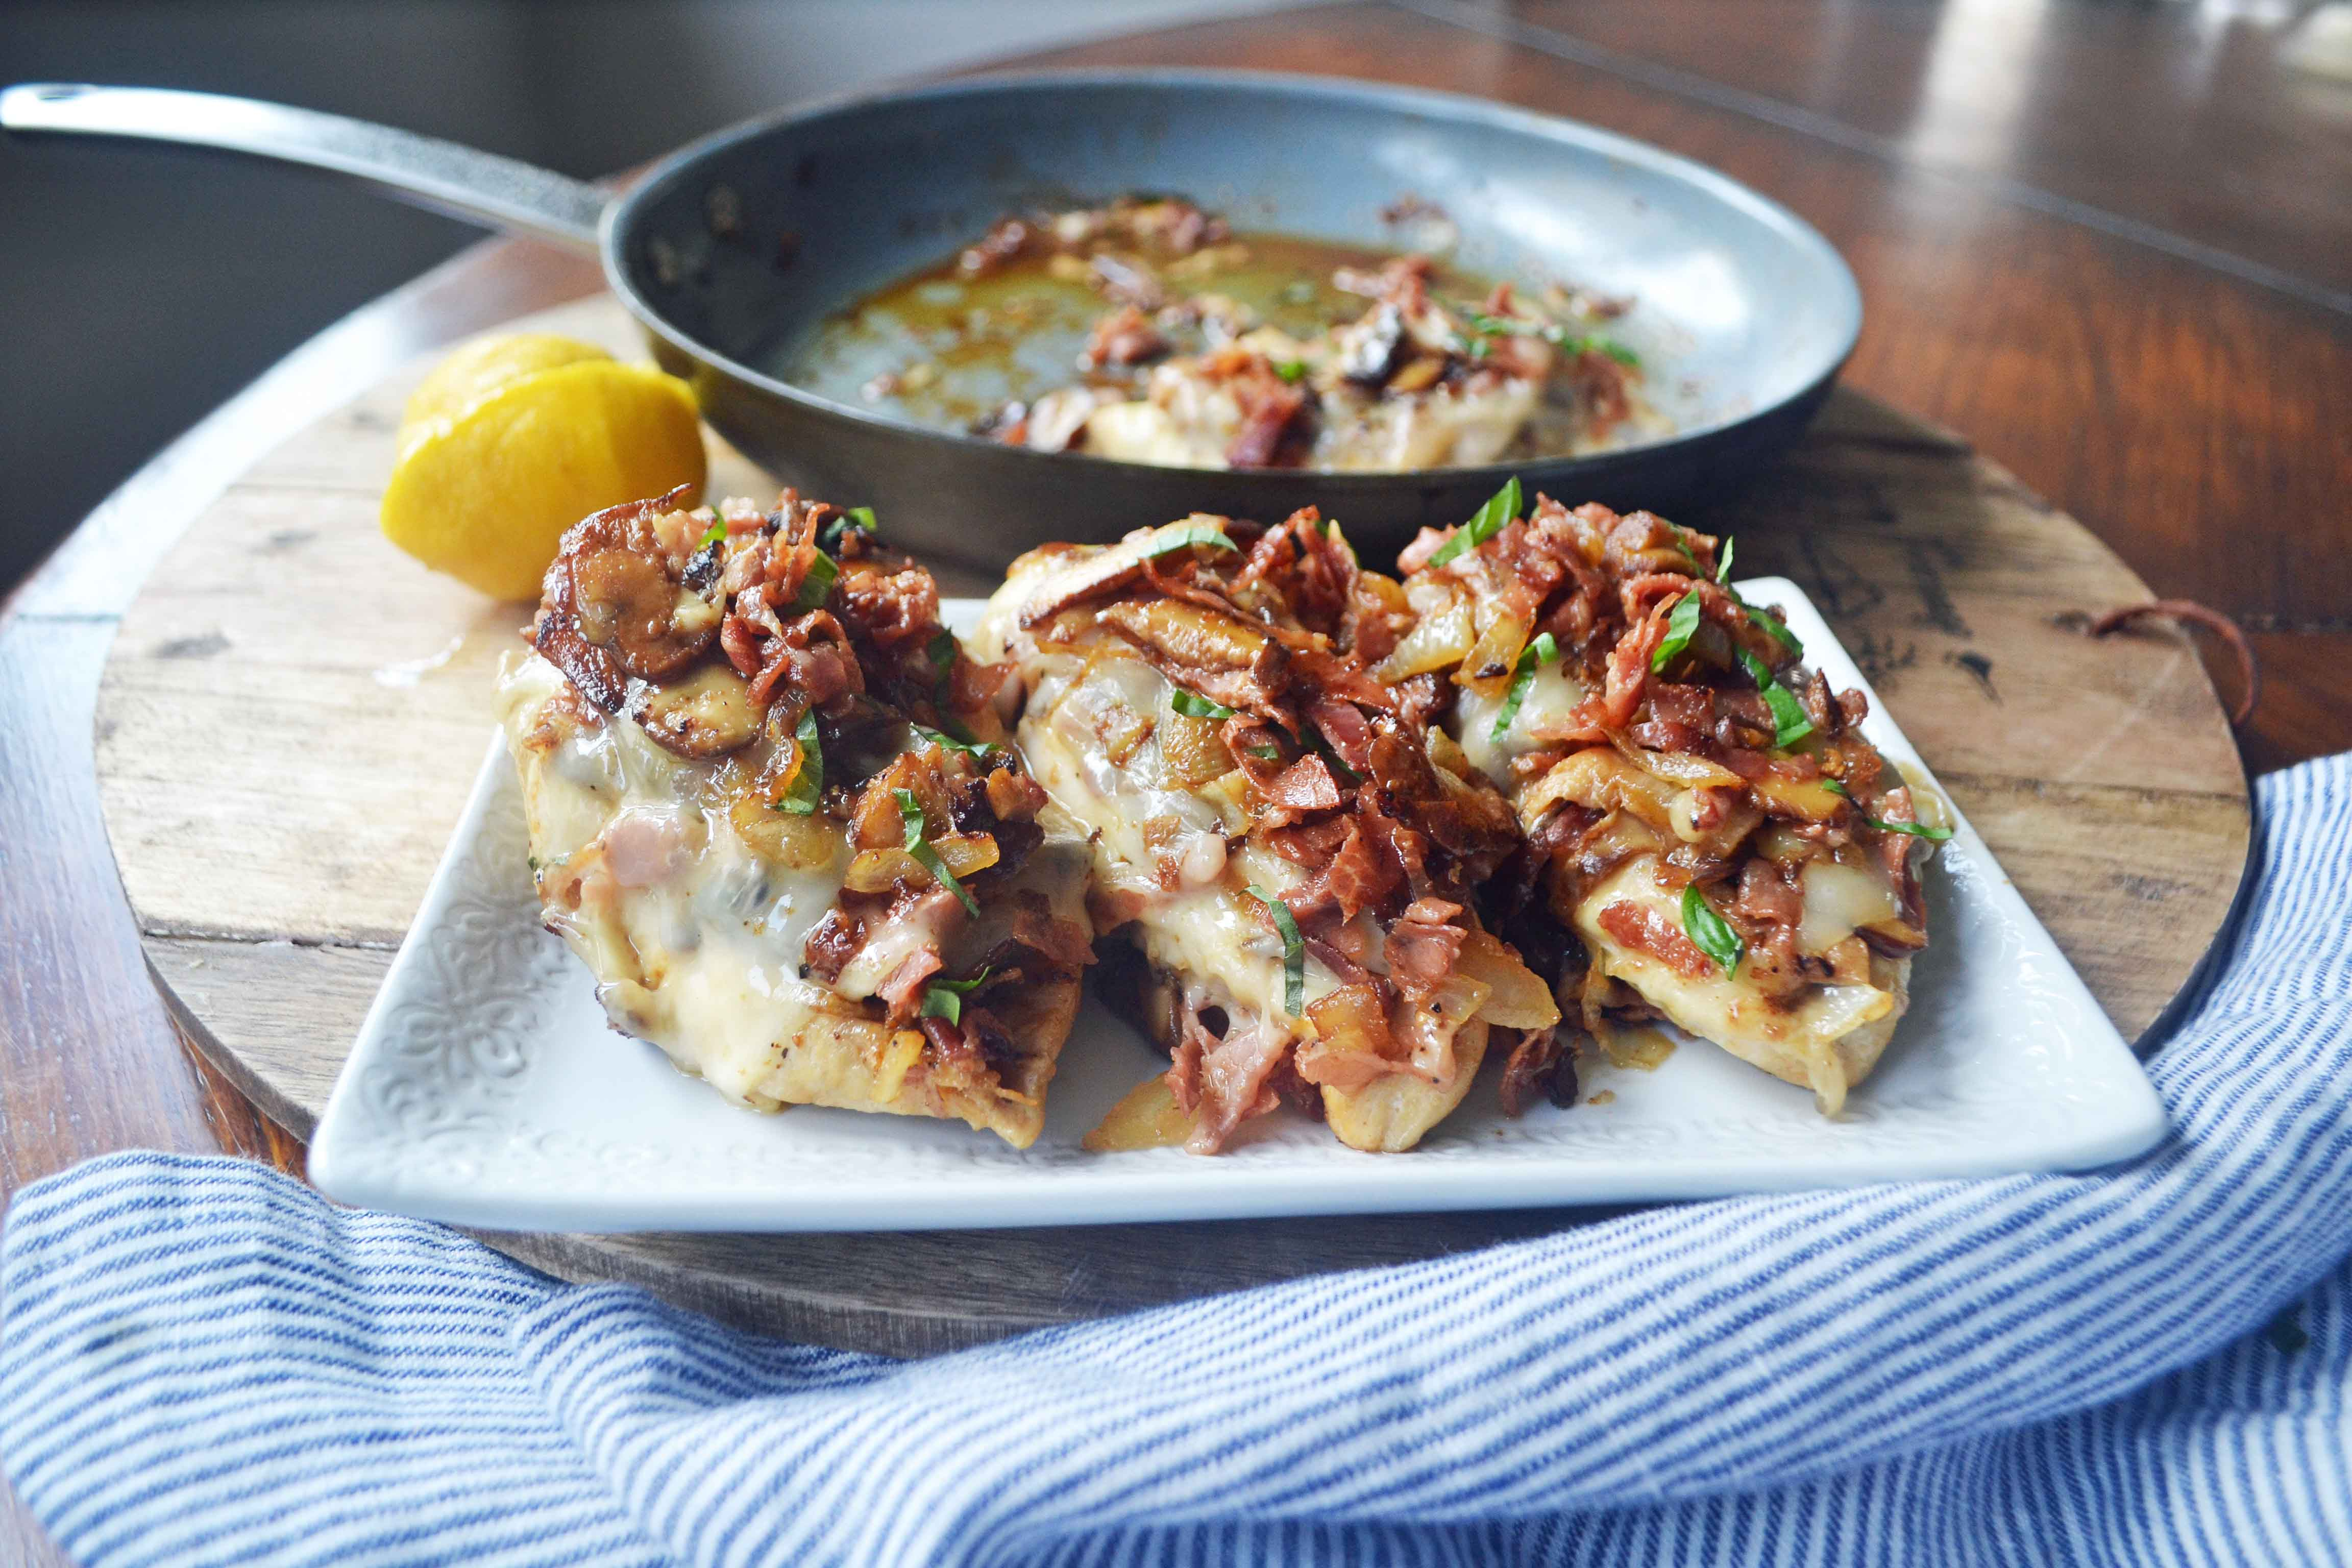 Chicken Rosa Maria by Modern Honey. Chicken breast sauteed with butter, onions, garlic, and mushrooms. Topped with crispy prosciutto and fontina cheese. www.modernhoney.com